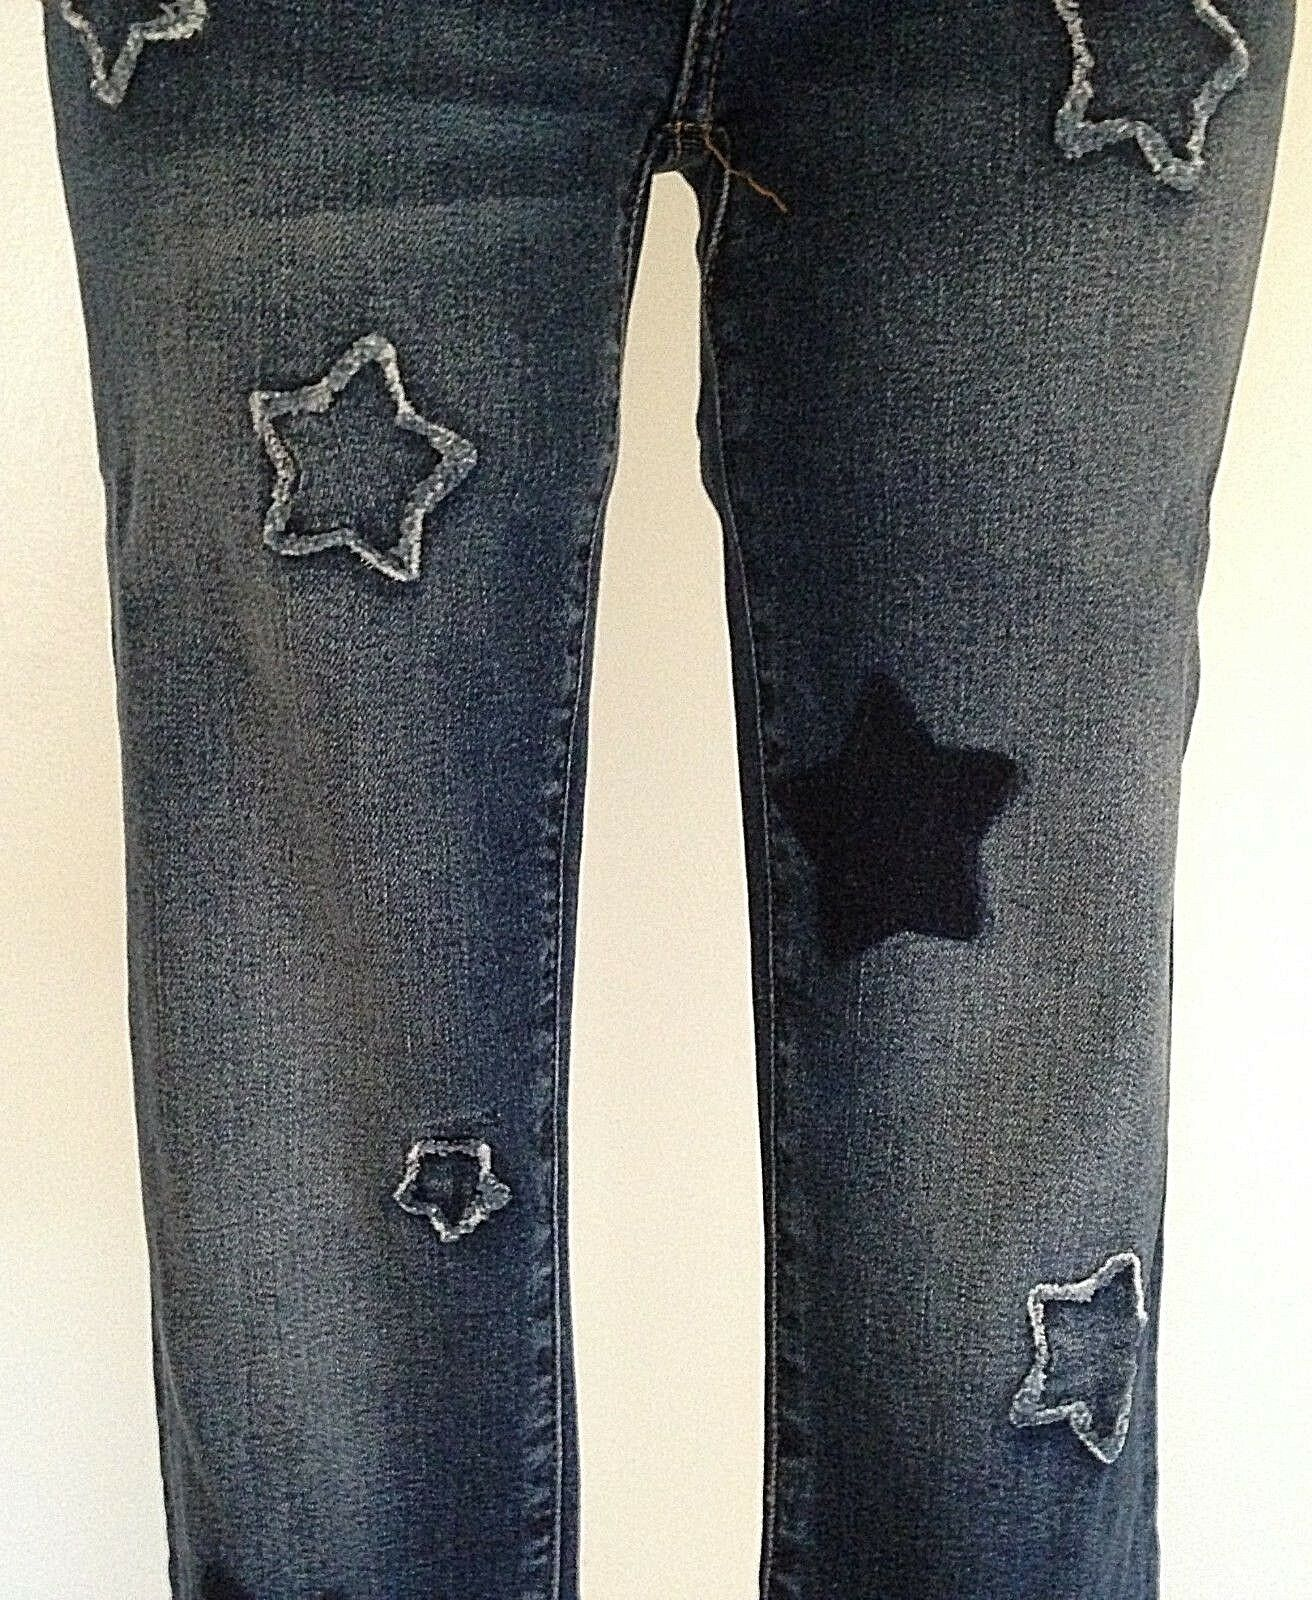 NEW MISS ME JEANS WITH TAG 2031 AK ANKLE SKINNY MID RISE INSEAM 27  STARS